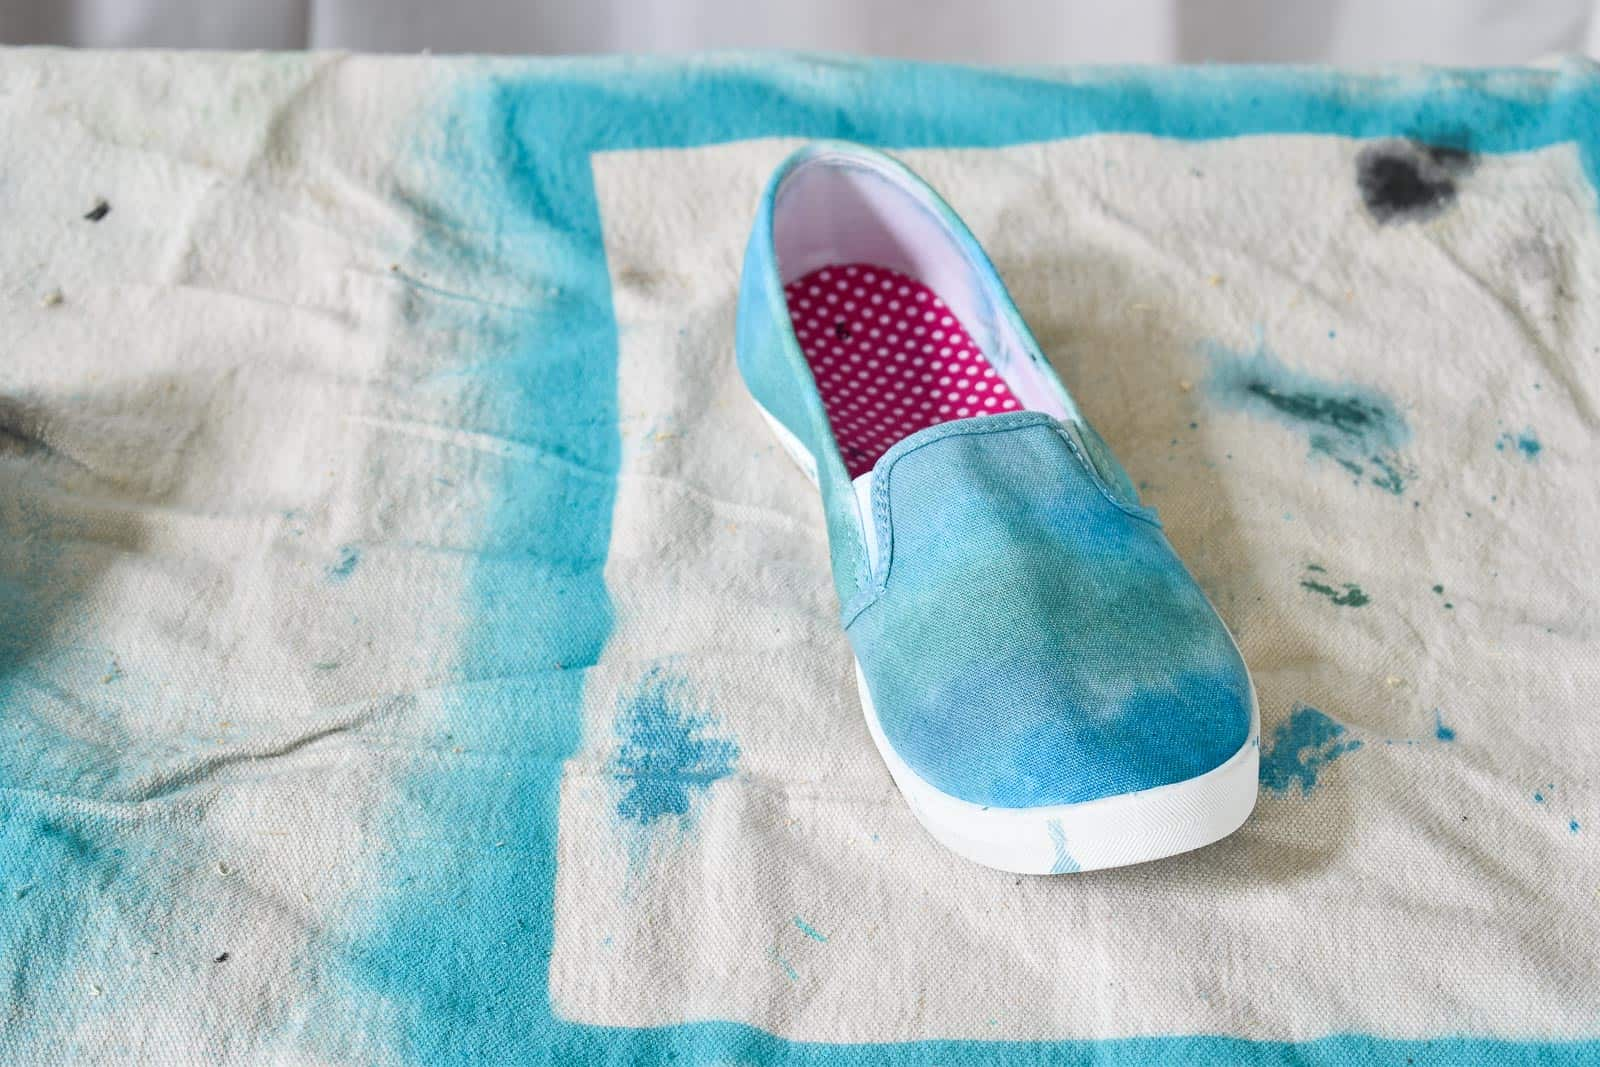 paint shoe with watercolor dye